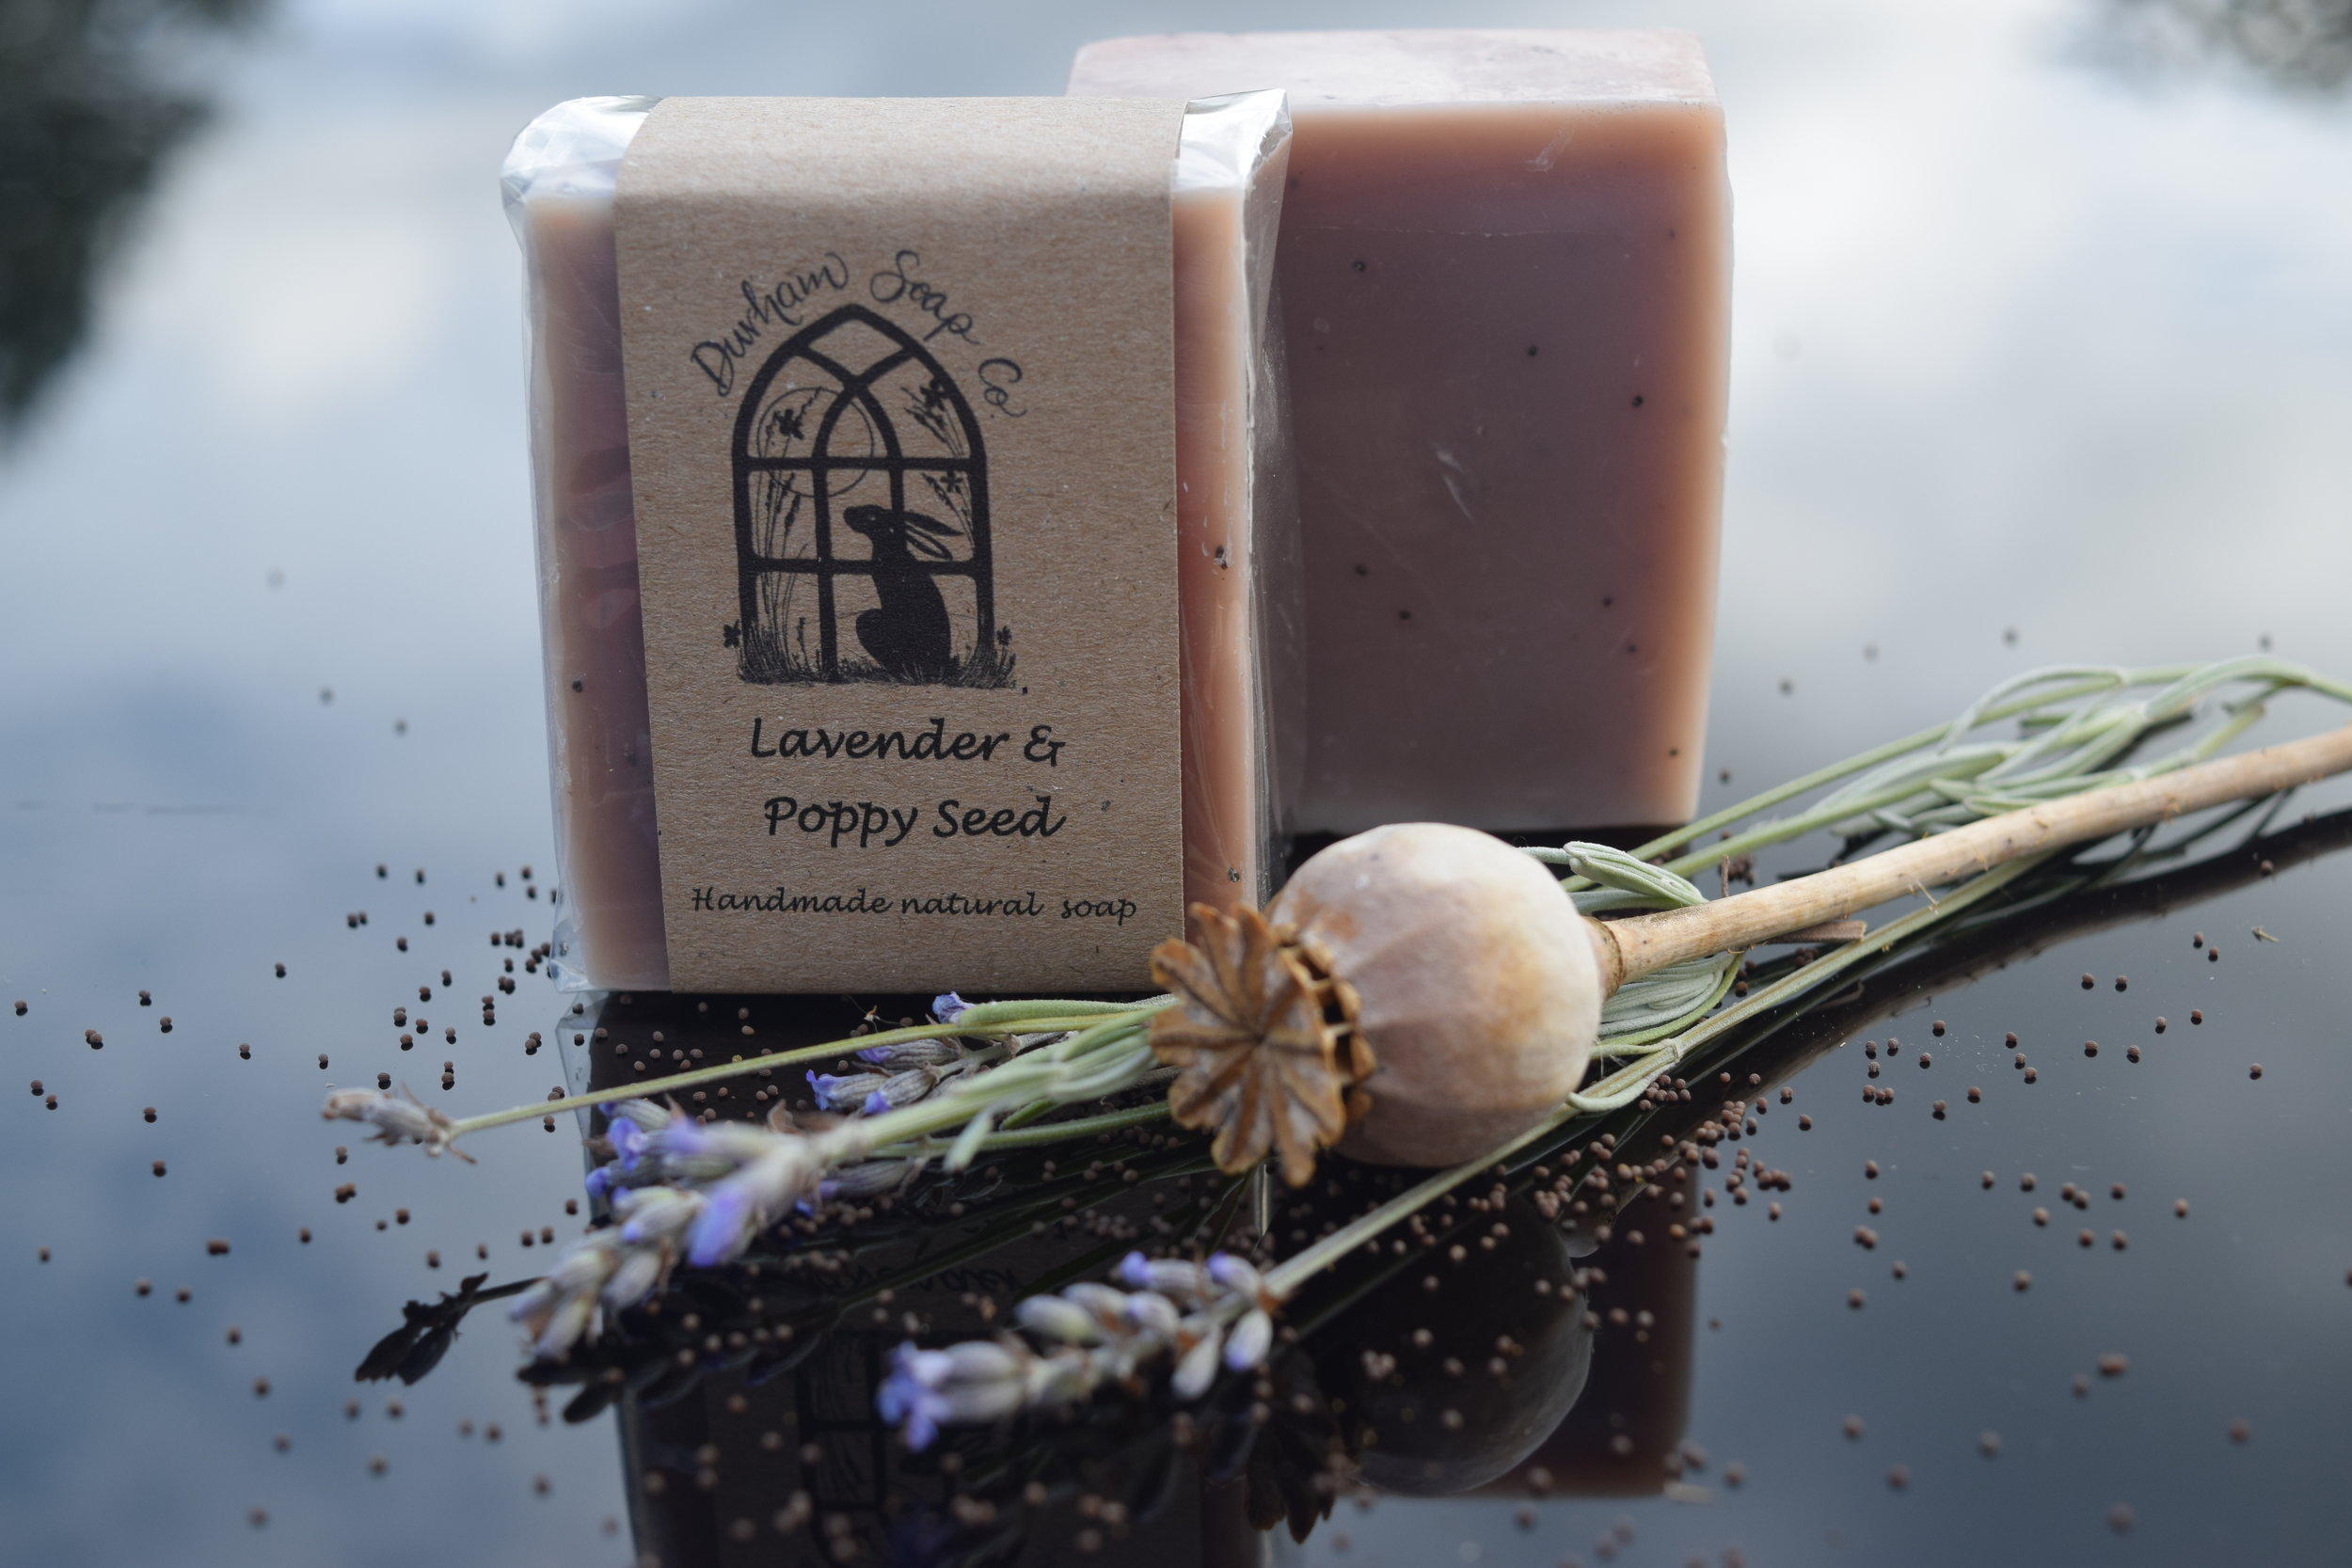 Lavender Poppy seed - Natural soap, handmade with our blend of pure plant oils, enriched with moisturising shea butter, cocoa butter and castor oil for a rich and creamy lather. Our soap is fragranced with pure lavender essential oil, known for its calming properties and is infused with a sprinkling of ground poppy seeds to give your skin the gentlest scrub.Ingredients: Olive oil, coconut oil, sunflower oil, shea butter, cocoa butter, water, glycerin, castor oil, lavender oil, poppy seeds), Vitamin E, alkanet root extract, limonene*, linalool*, * = occurs naturally in essential oils.Net weight: 100 g